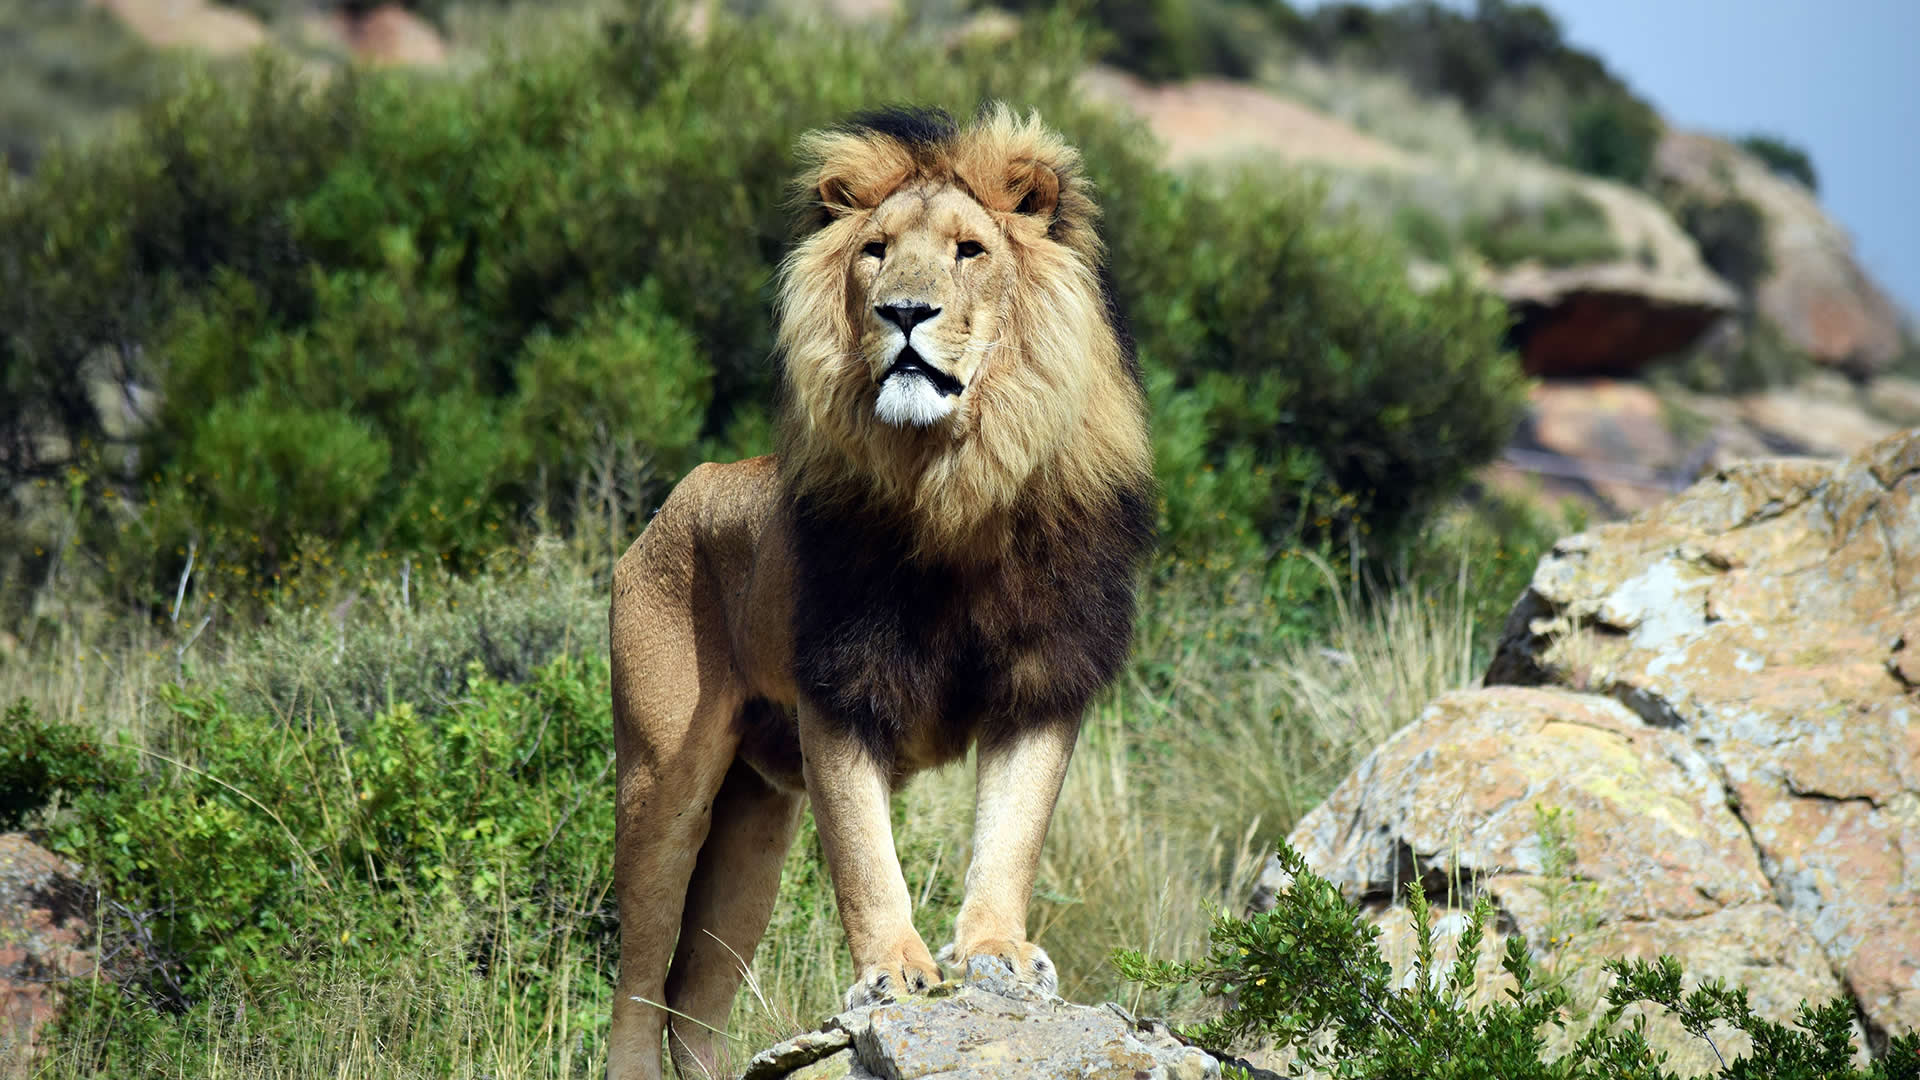 Volunteer Work with Lions in South Africa, LIONSROCK Lion Sanctuary